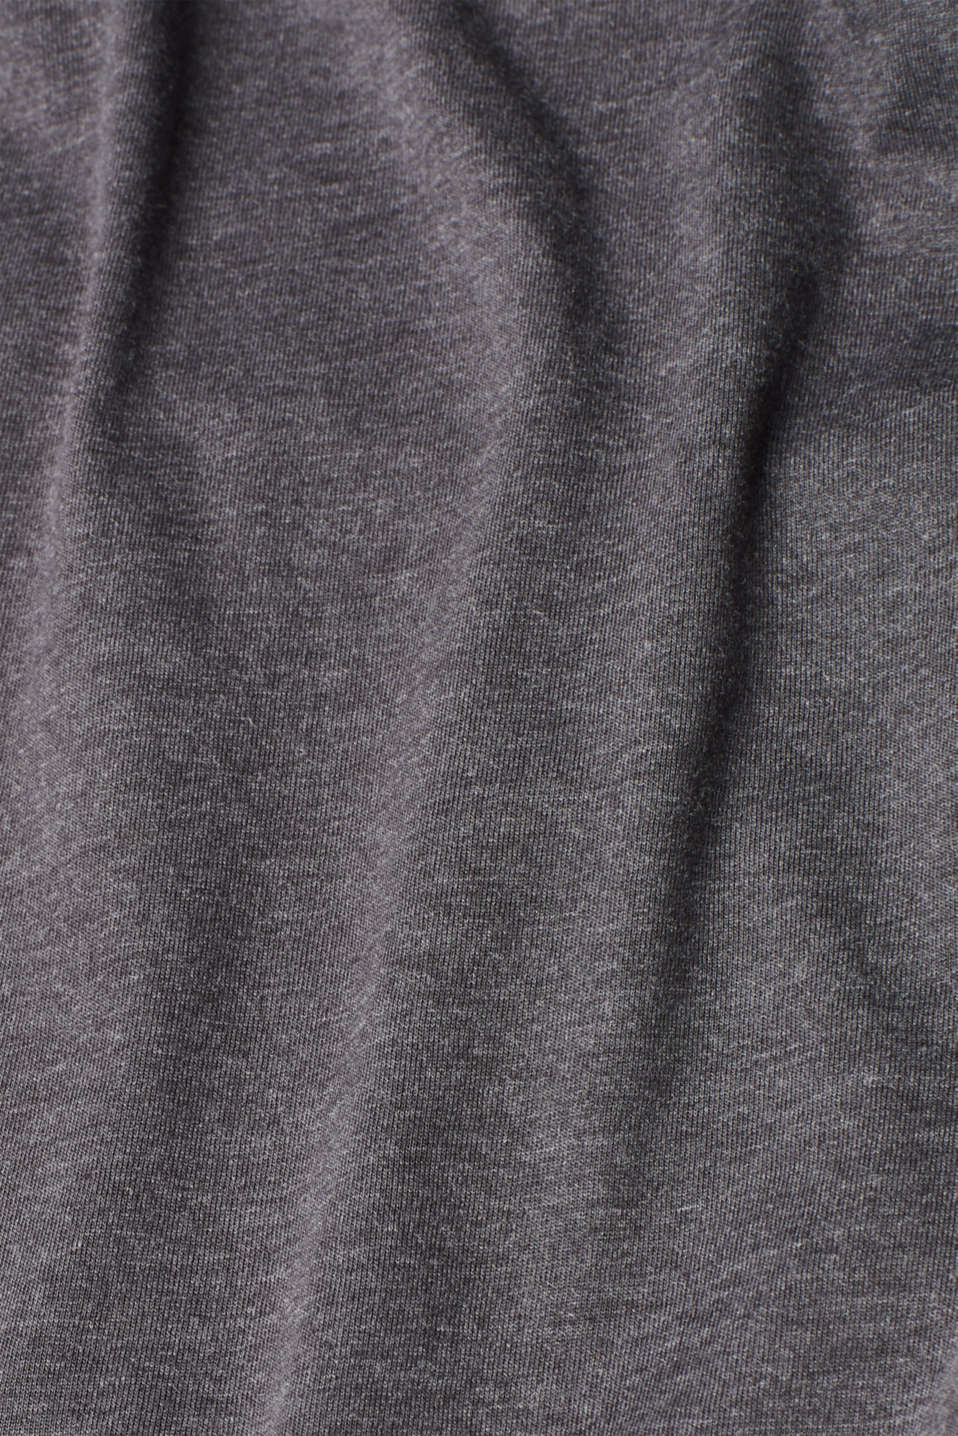 Melange long sleeve top with organic cotton, ANTHRACITE 4, detail image number 4